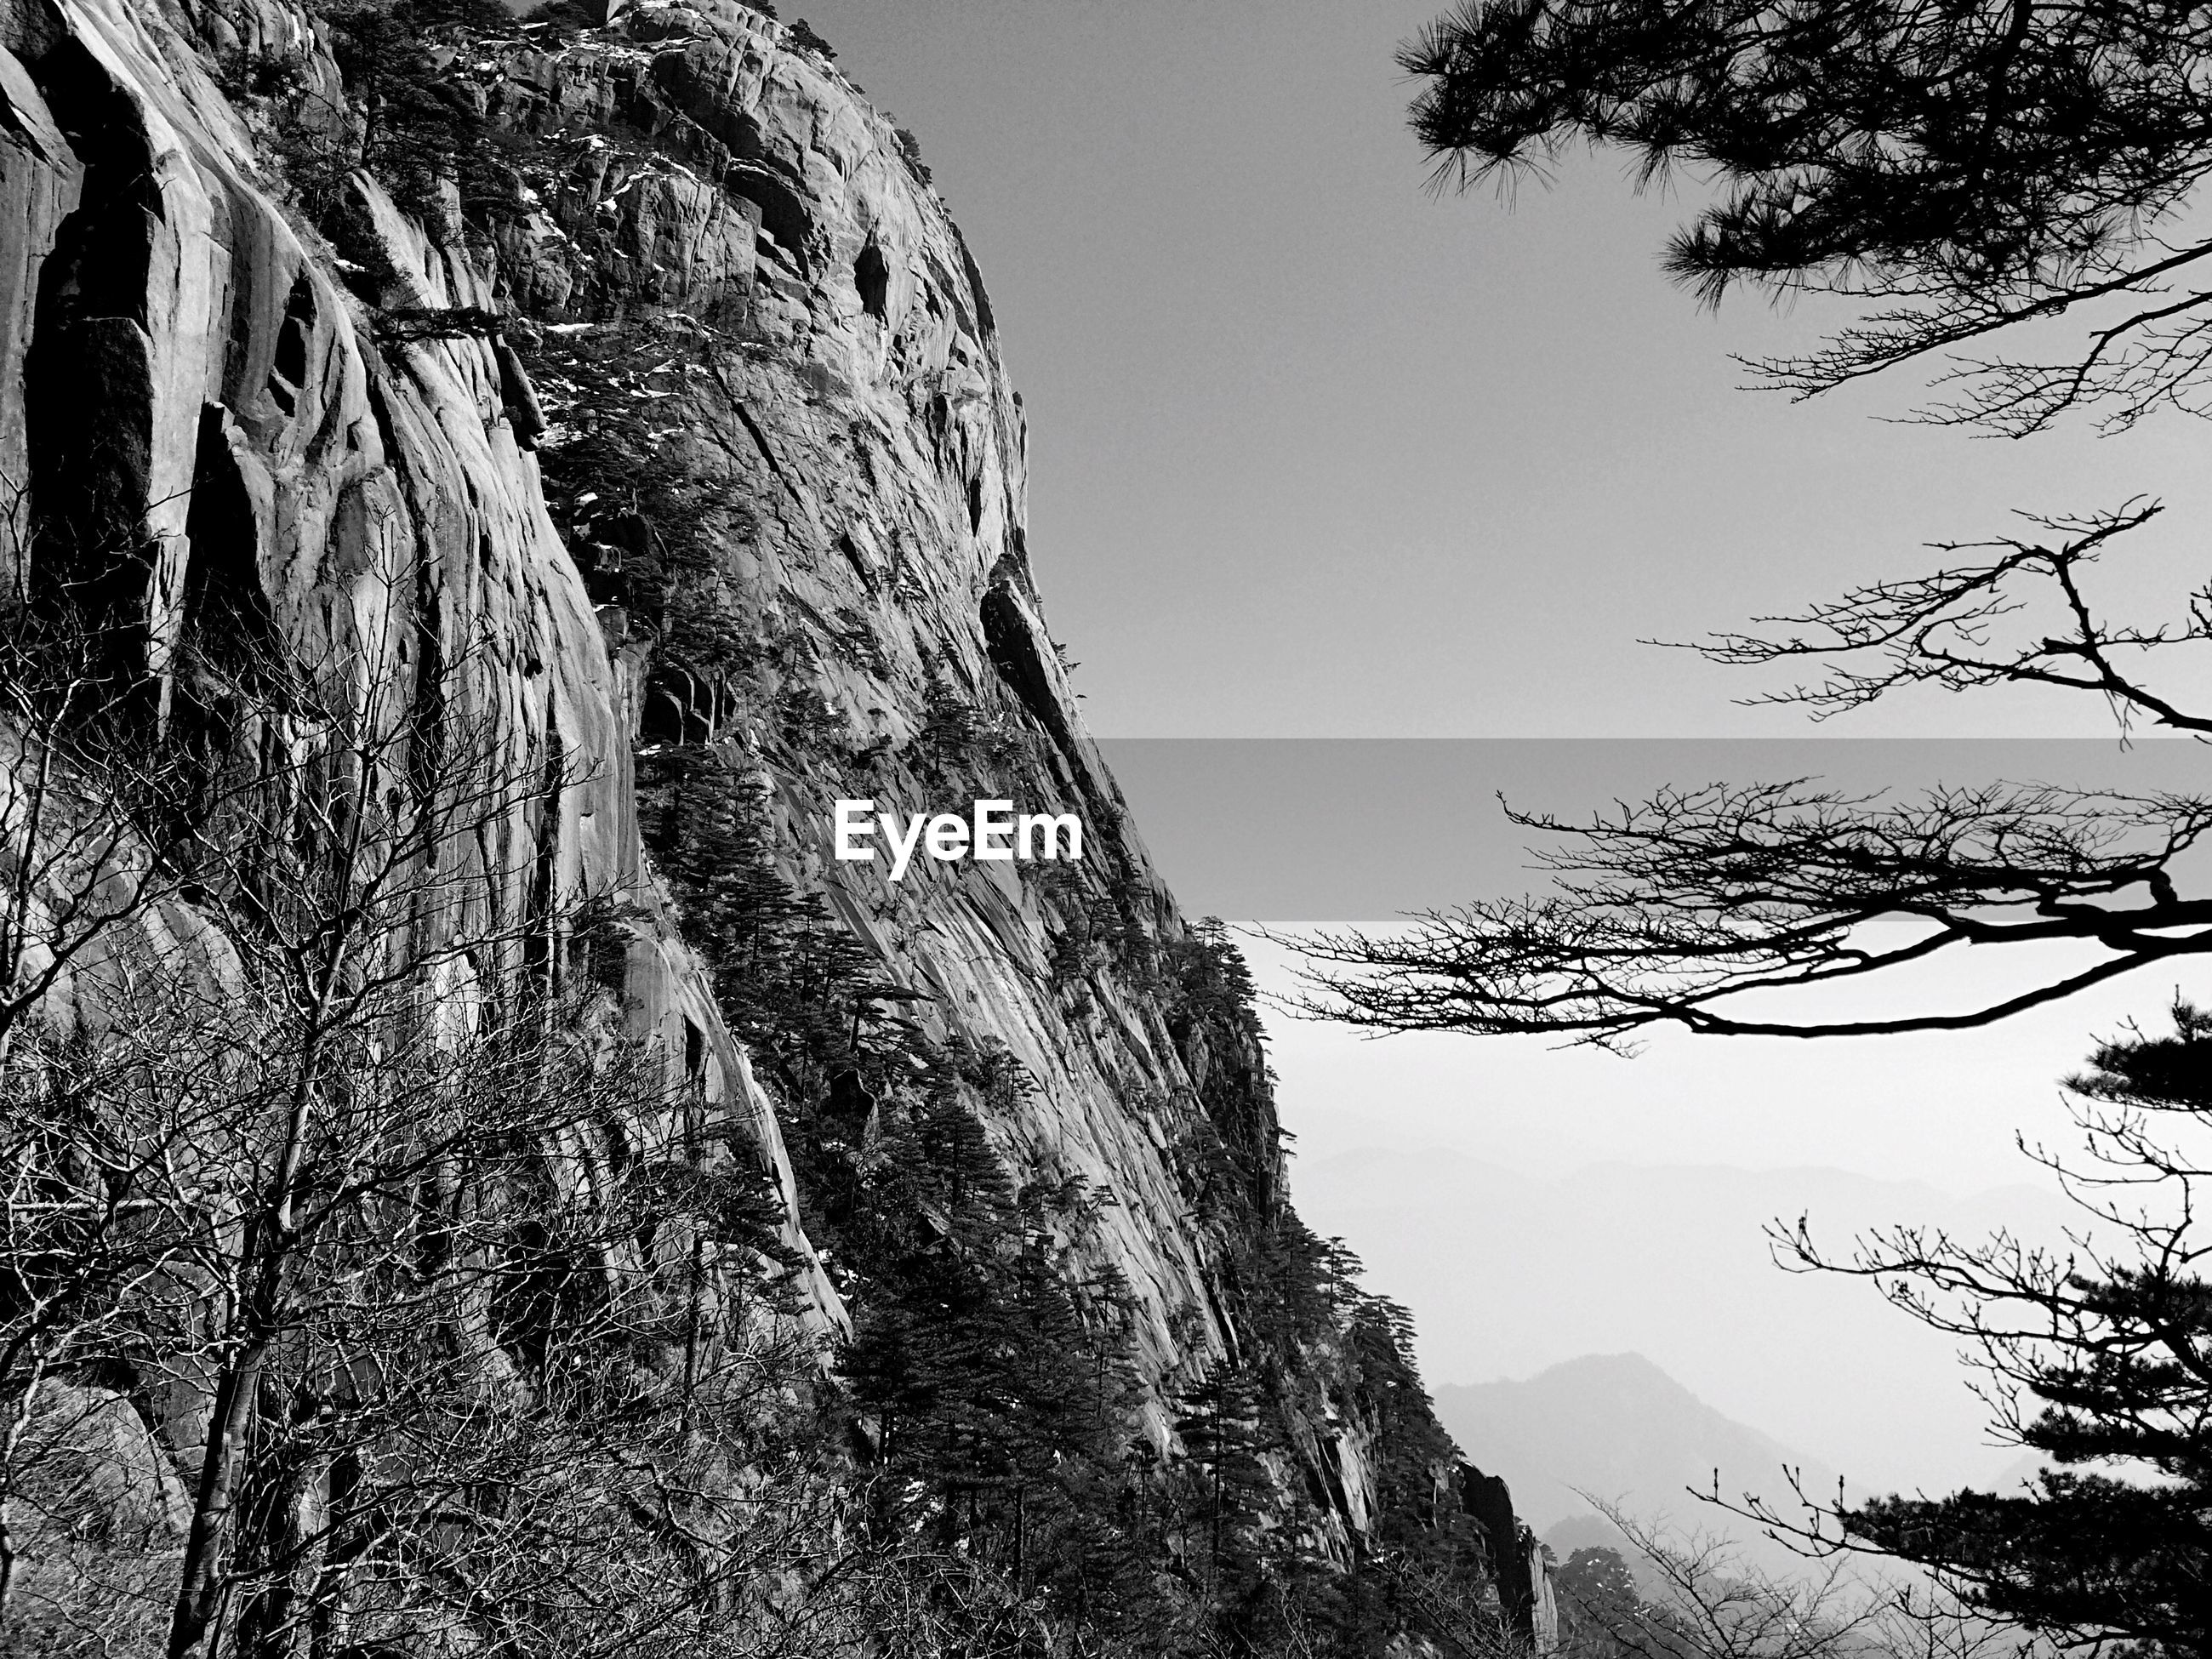 tree, low angle view, clear sky, branch, tree trunk, nature, tranquility, sky, day, growth, no people, mountain, outdoors, bare tree, beauty in nature, tranquil scene, scenics, blue, rock formation, built structure